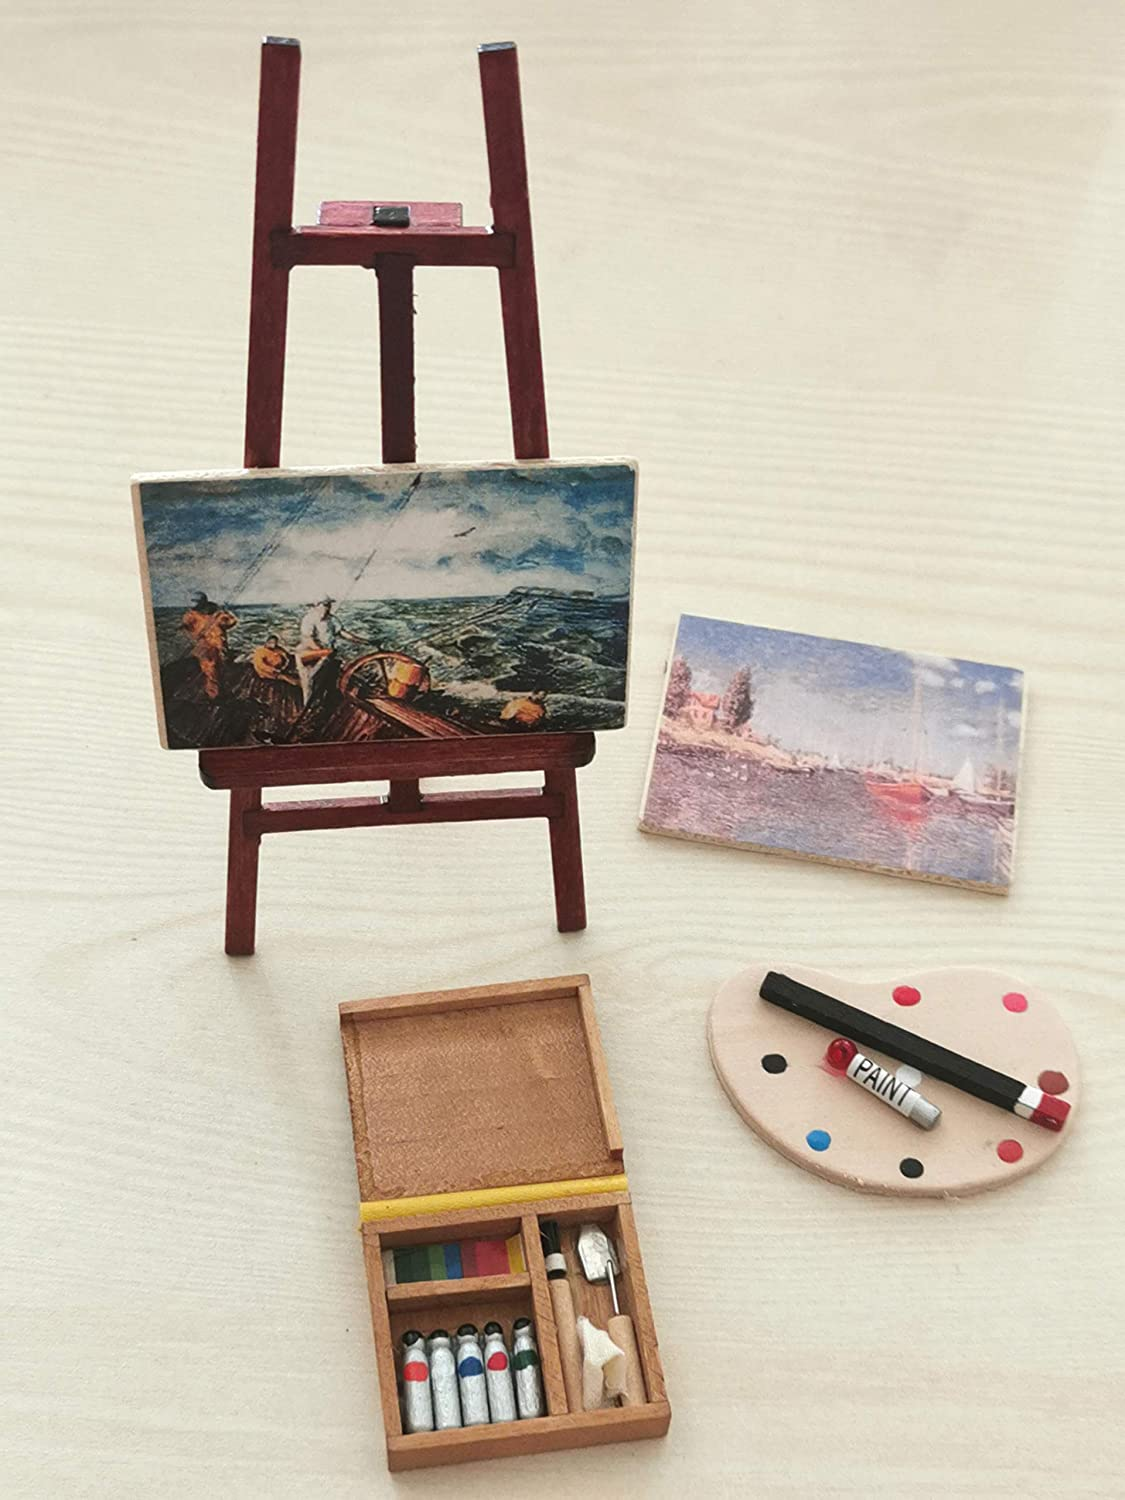 SXFSE Dollhouse Decoration Accessories, 1/12 Dollhouse Miniature Wooden Easel Oil Painting Set Palette Watercolor Box Simulation Toys for Doll